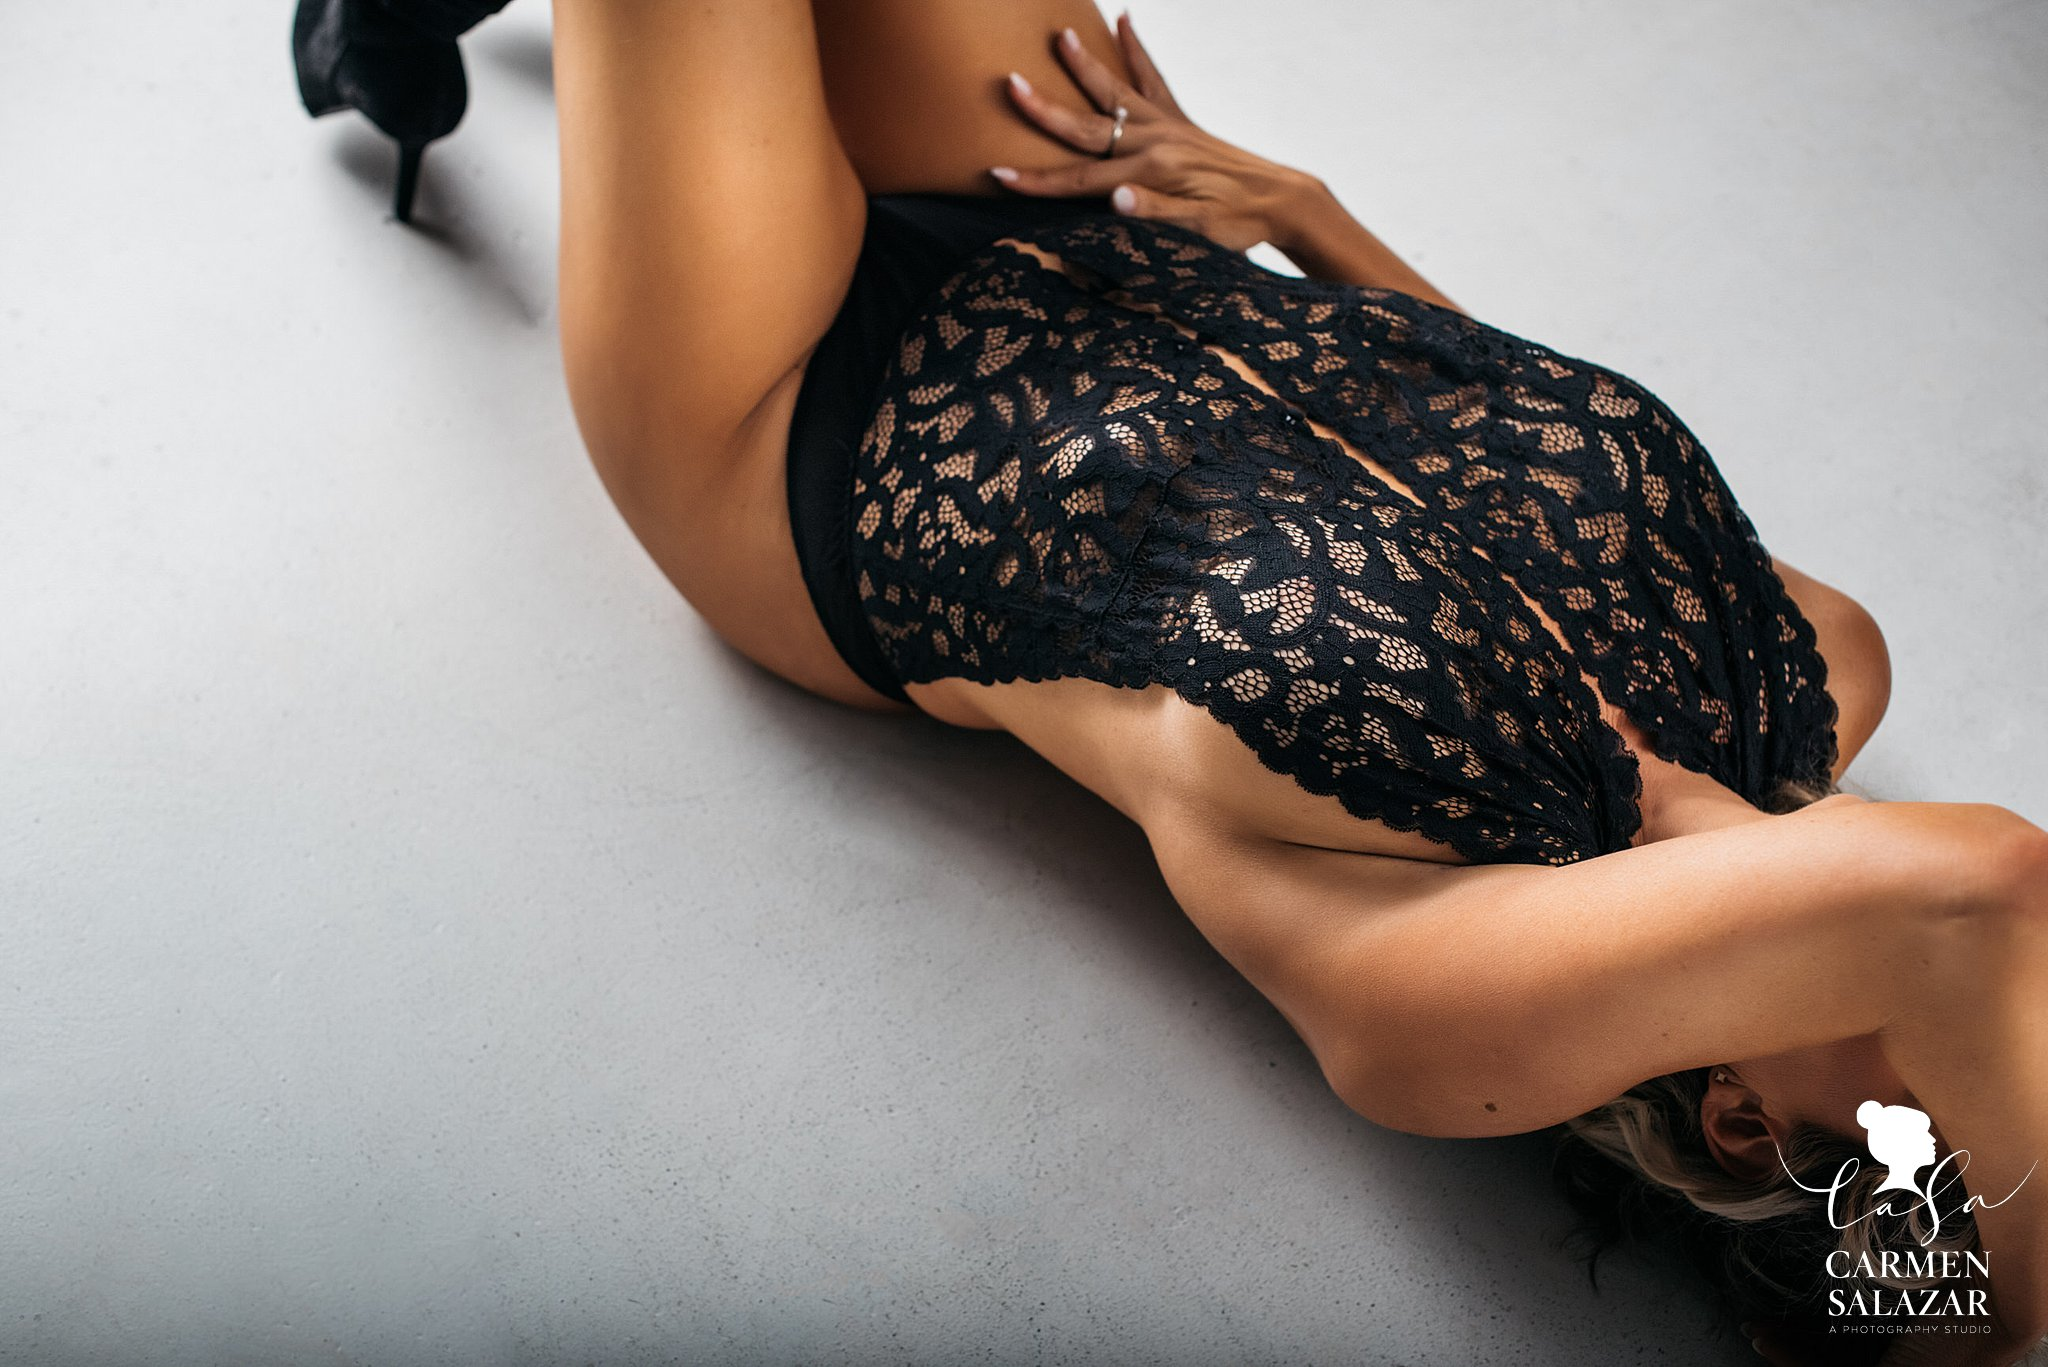 Boudoir picture of girl in lace bodysuit on the floorv by Sacramento Boudoir photographer Carmen Salazar